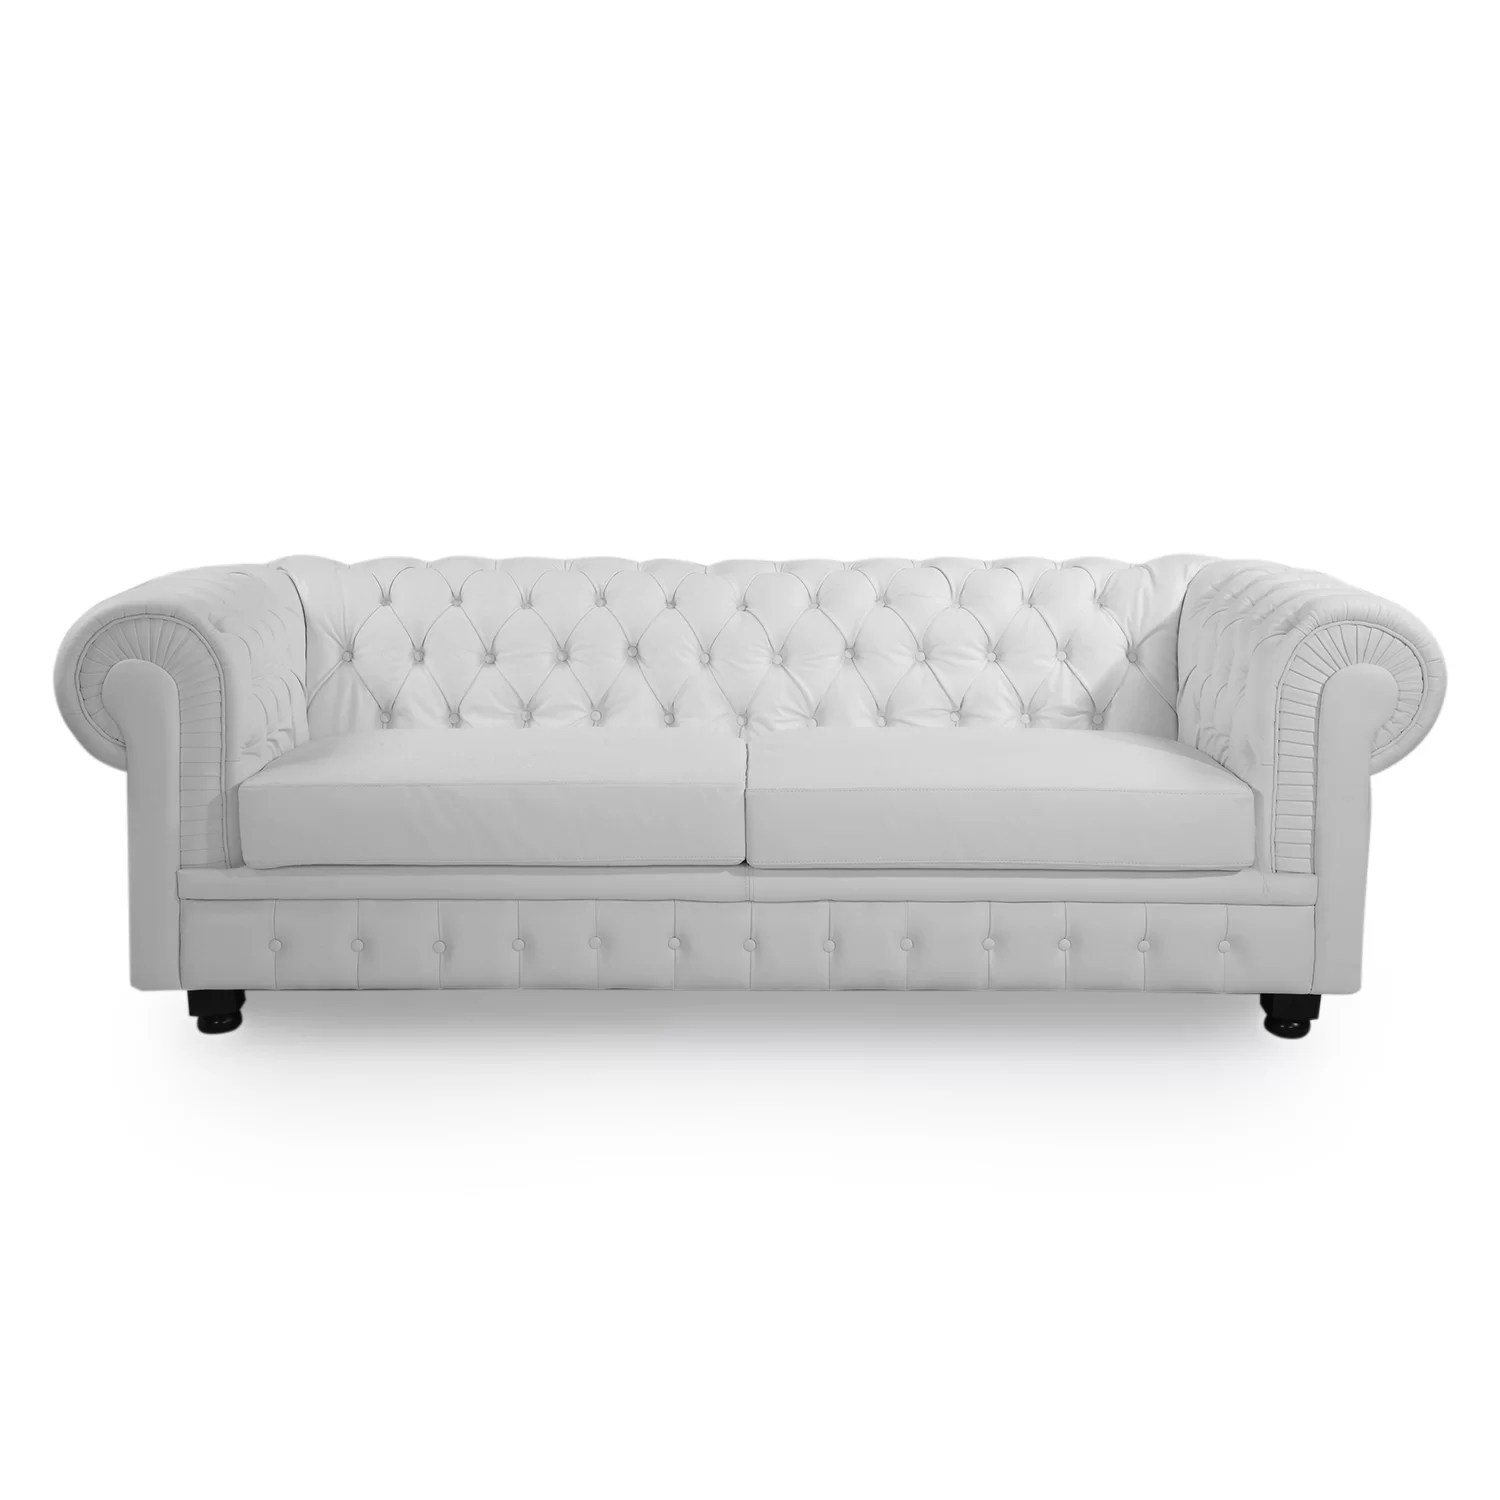 chesterfield sofa modern set cover on flipkart kardiel classic wayfair